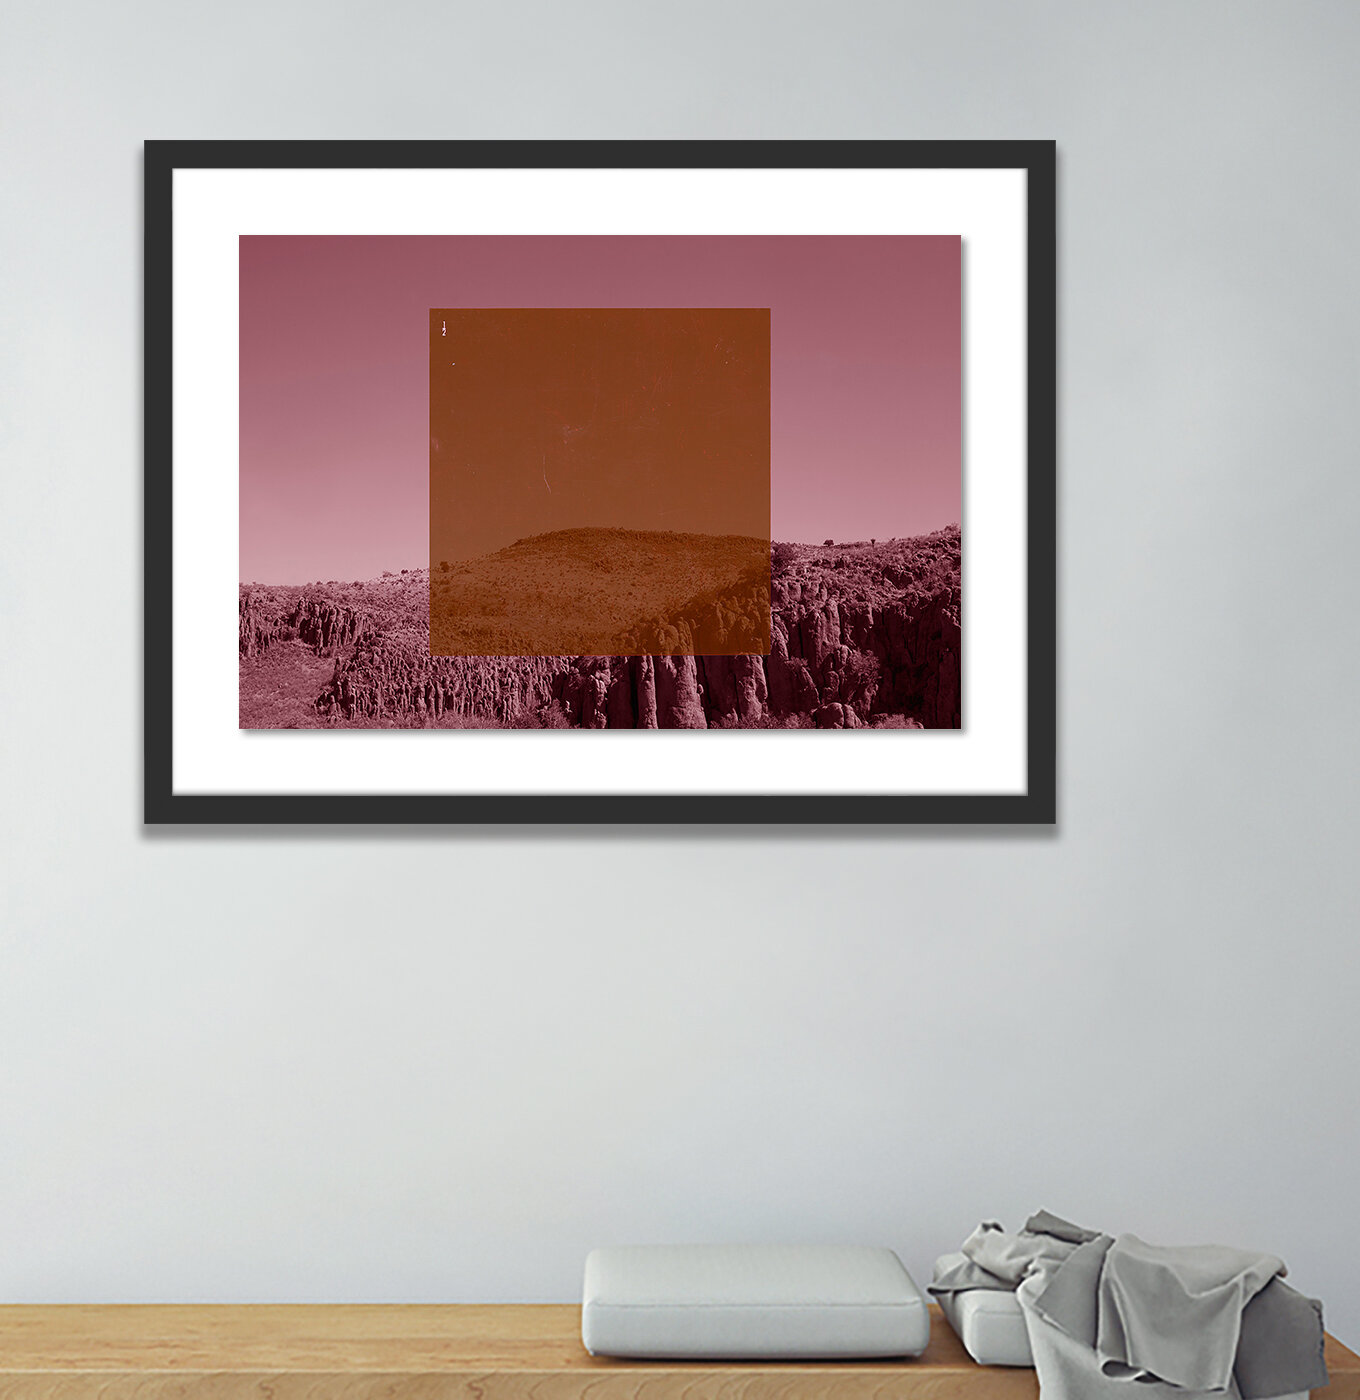 Orange On Pink By Riley Ryan Wood Picture Frame Graphic Art Print On Paper Allmodern